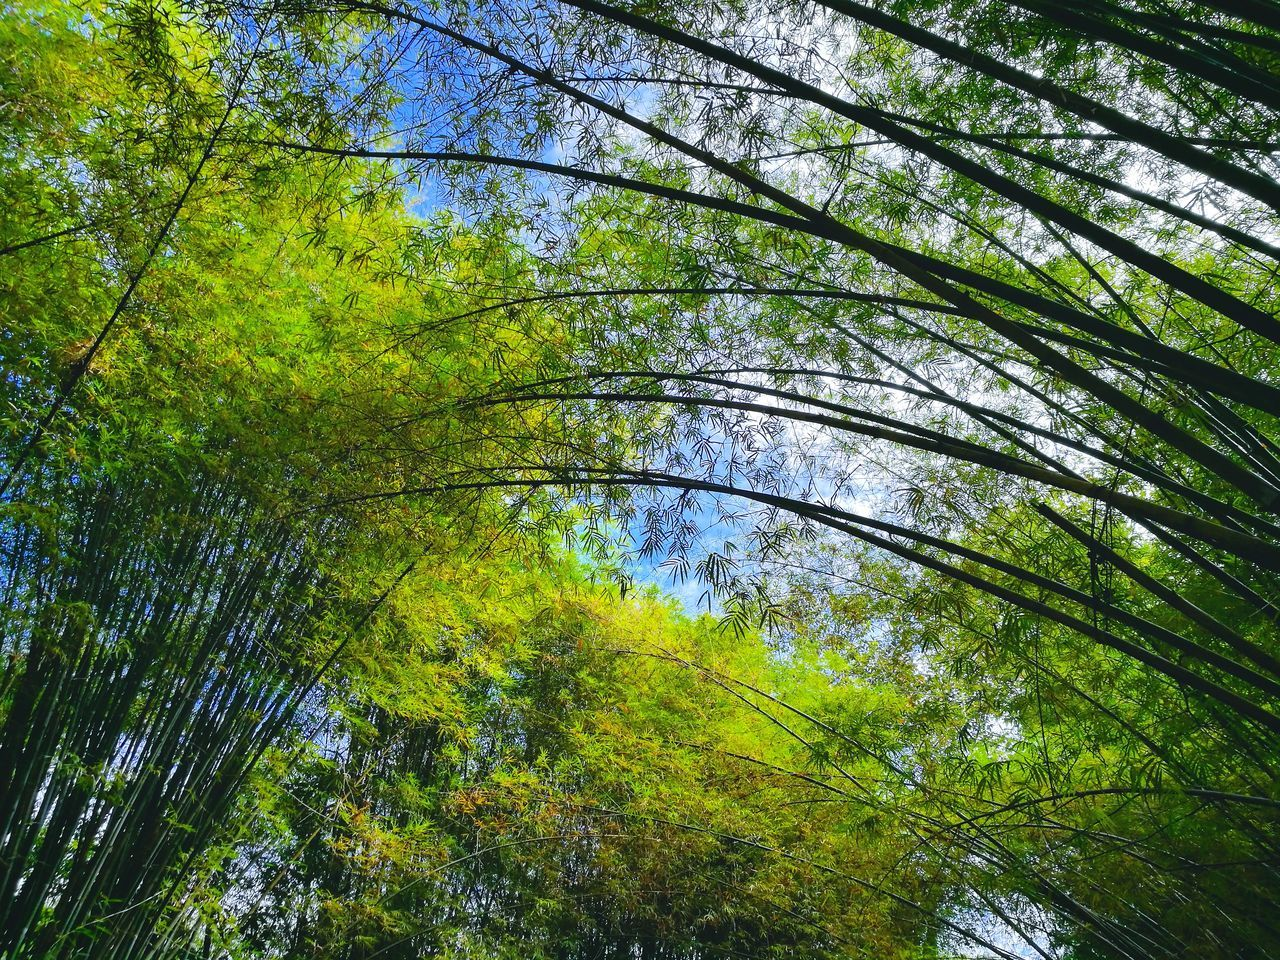 Tree Growth Nature No People Low Angle View Green Color Beauty In Nature Sky Day Backgrounds Outdoors Tranquility Multi Colored Close-up Bamboo Grove EyeEmNewHere